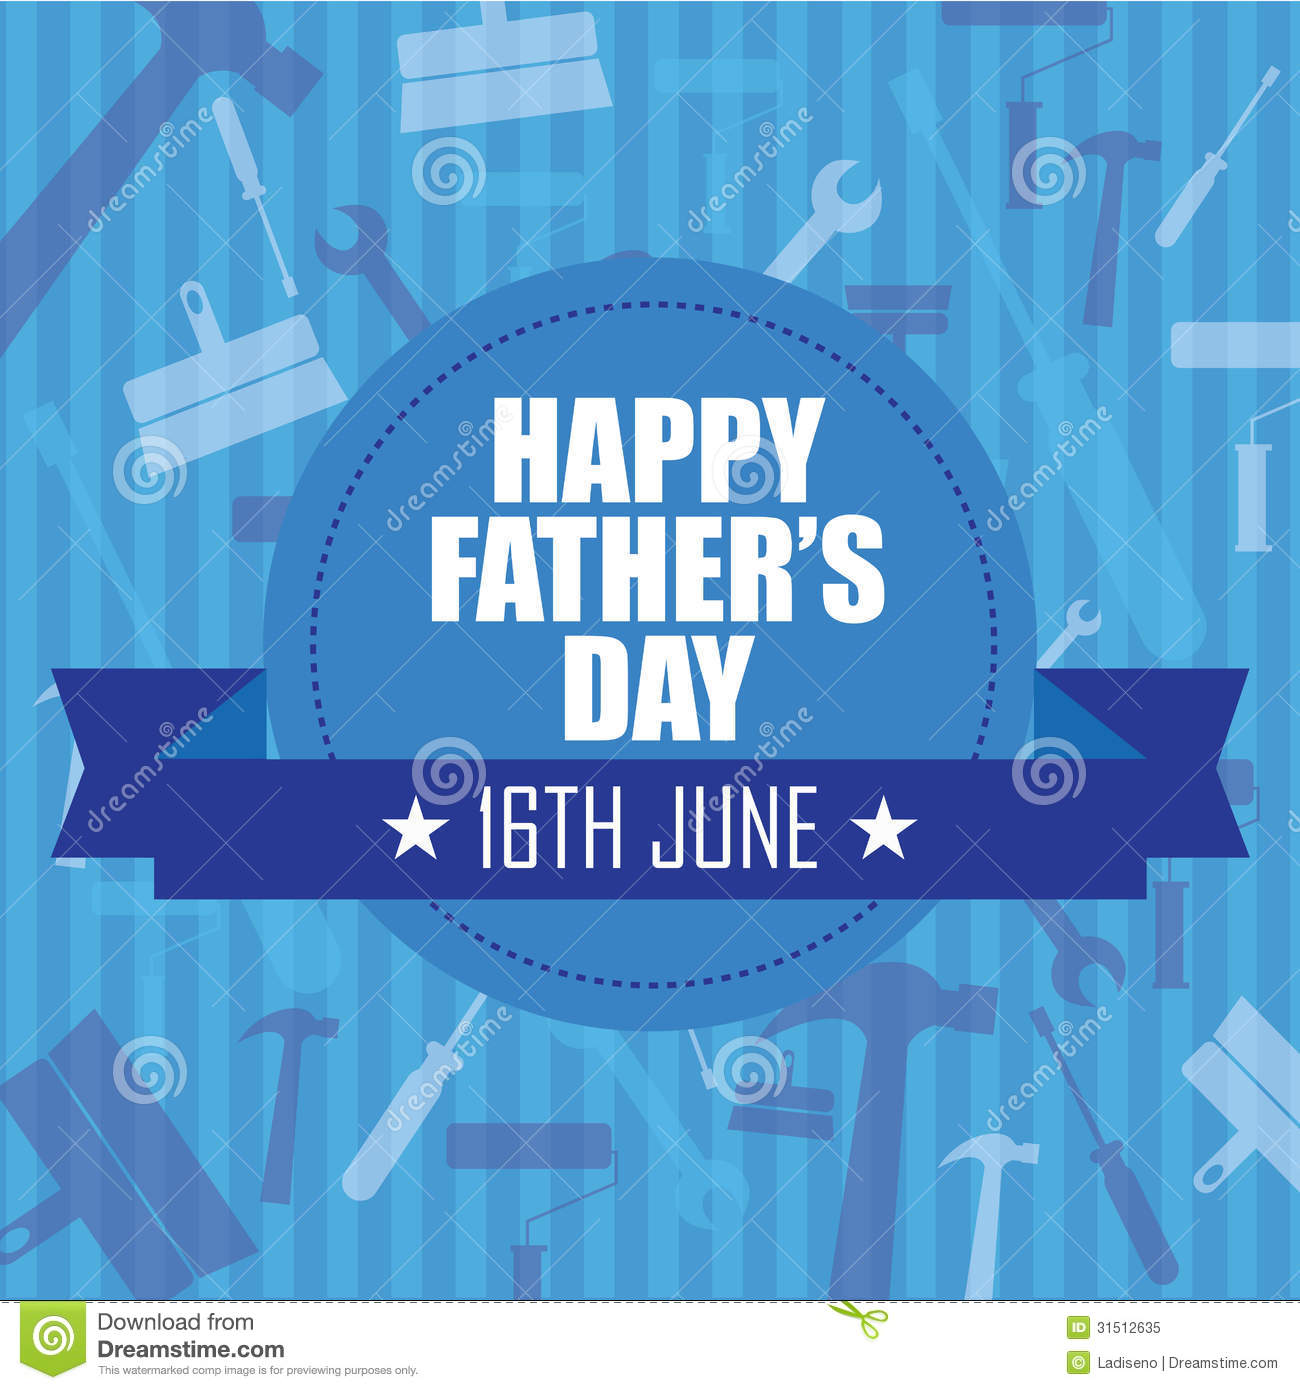 Cute Pattern Wallpaper Free Dad Icon Royalty Free Stock Photo Image 31512635